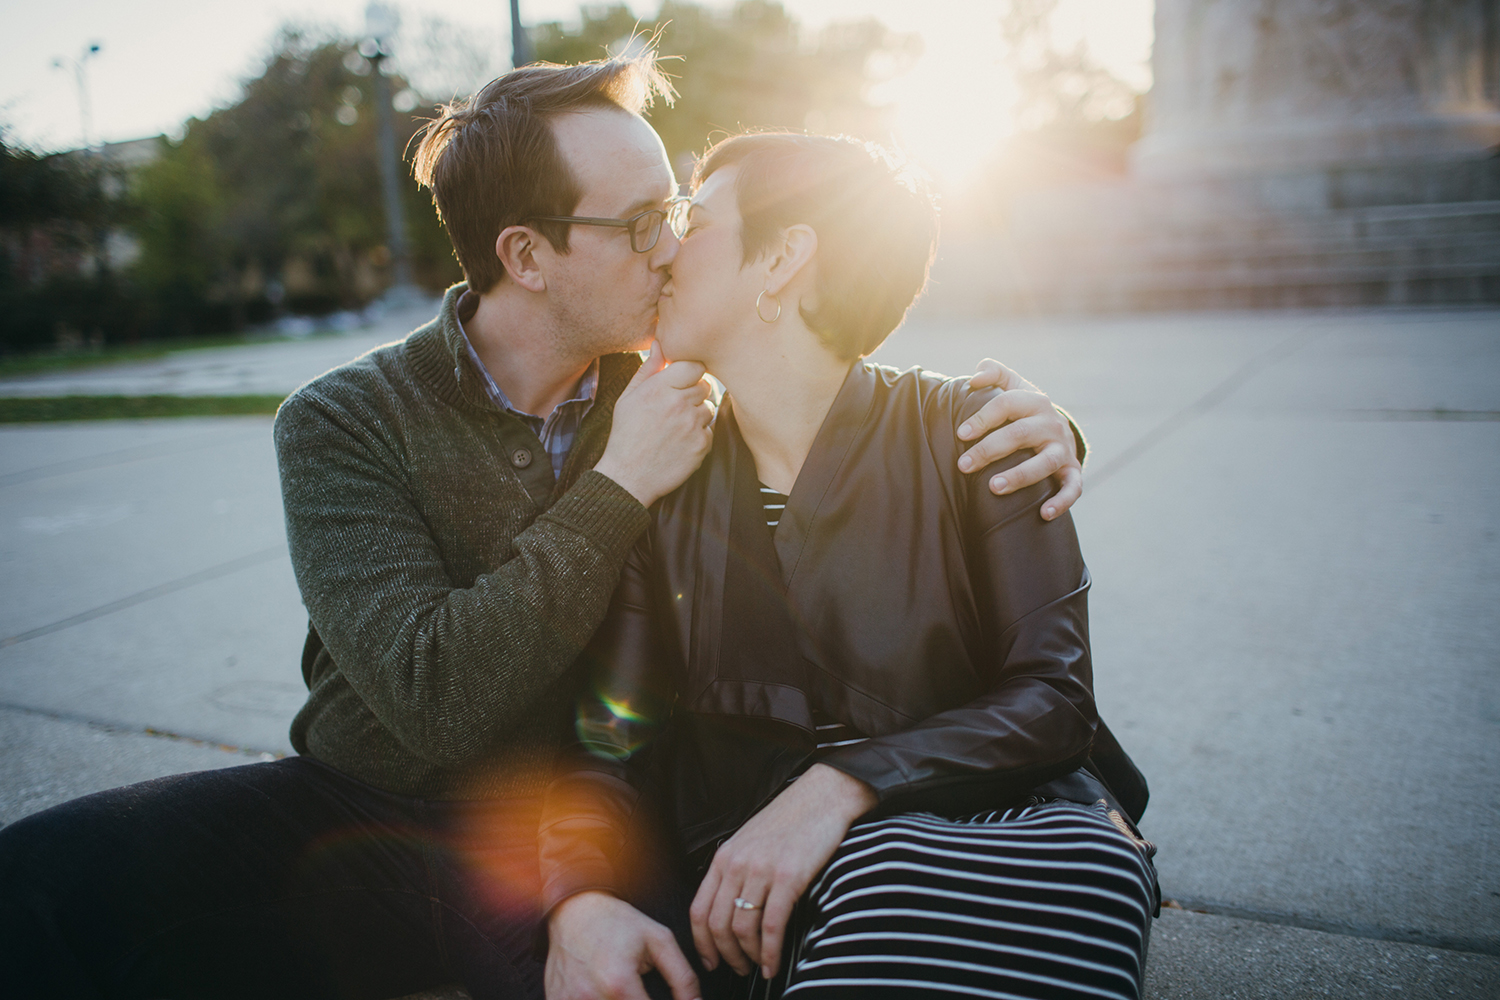 chicago_engagement_photos_logan_square_west_side_elearnor_mark (24 of 32).jpg